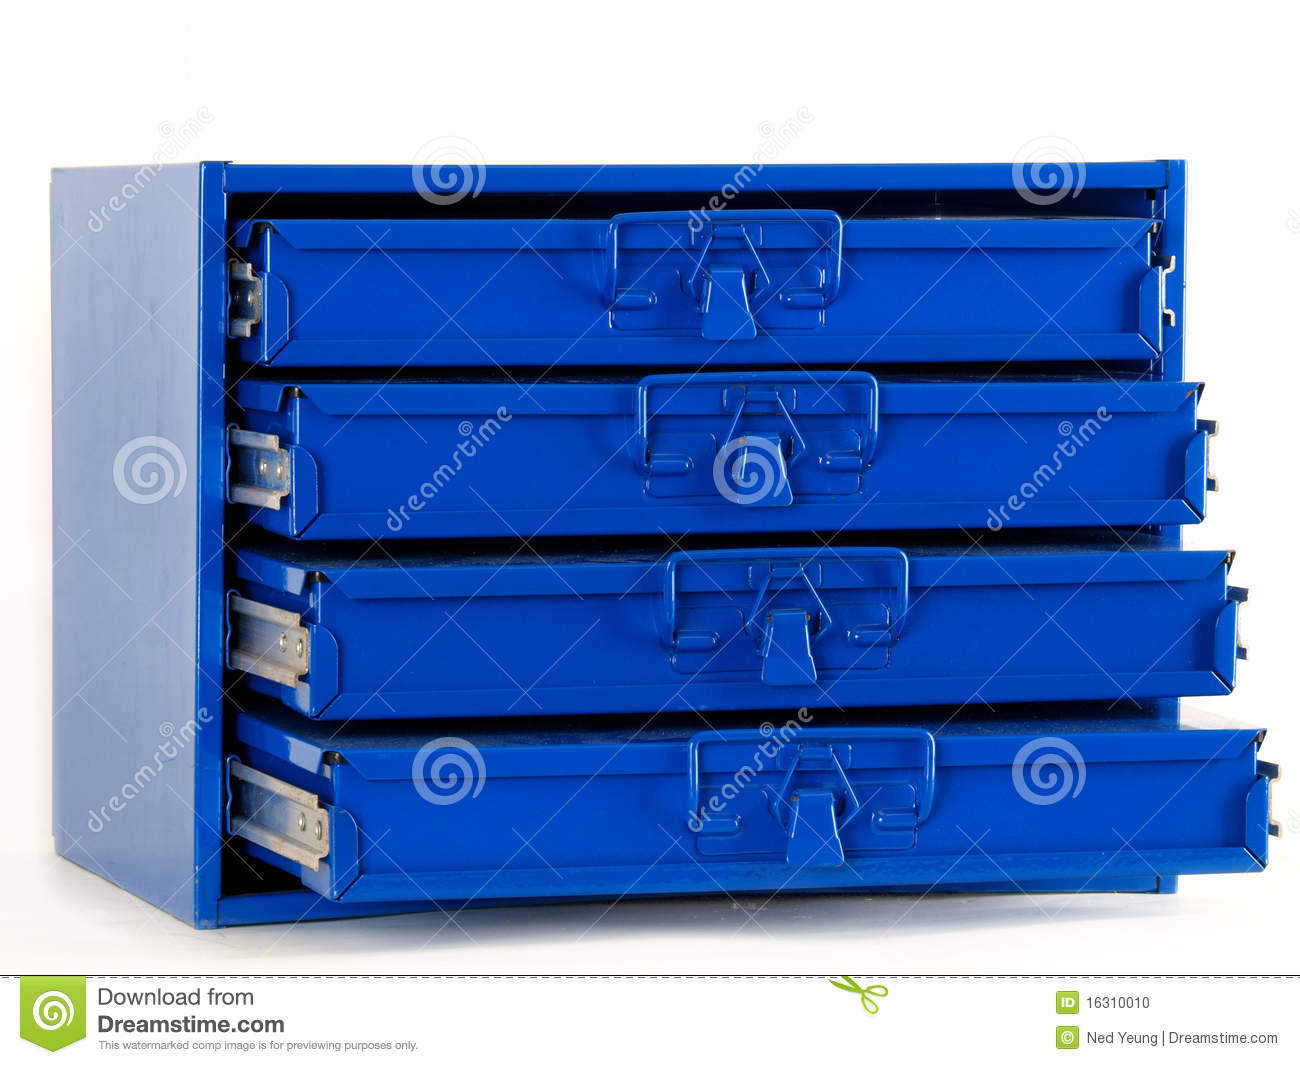 Nut bolt and small hardware organizer stock photo - Organizing nuts and bolts ...